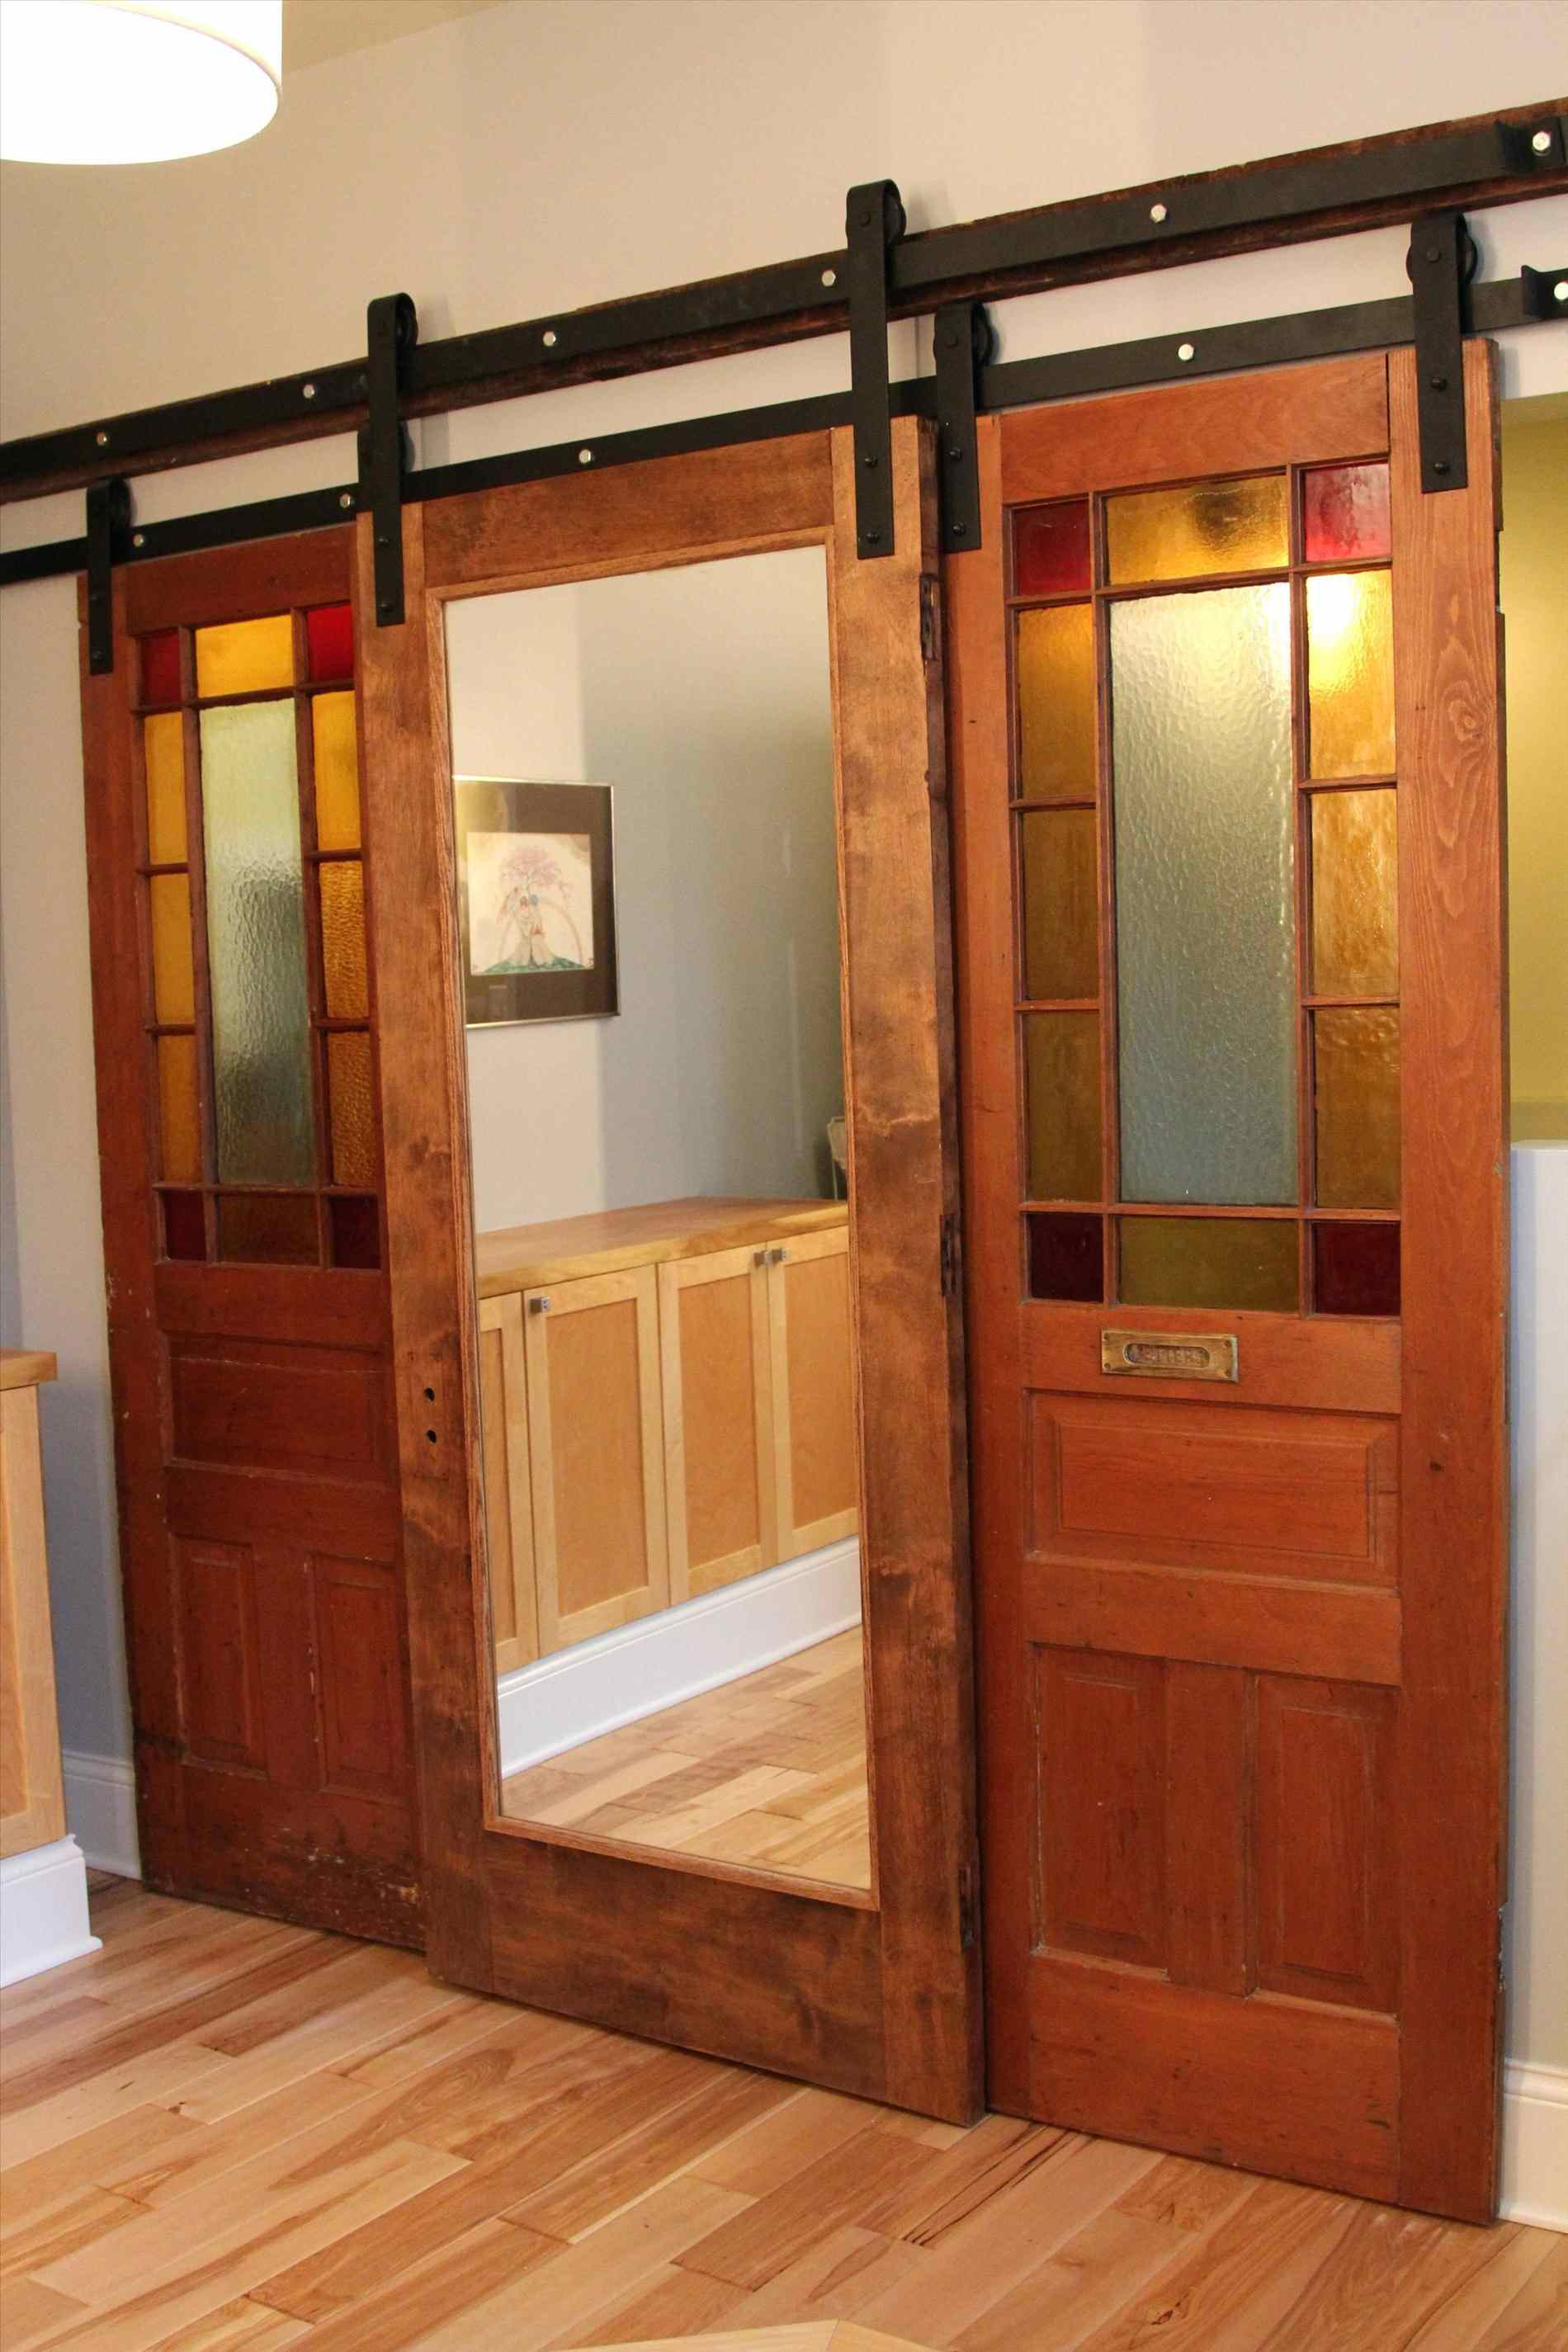 Shoji Doors Home Depot | Sliding Doors for Closets Home Depot | Home Depot Sliding Doors